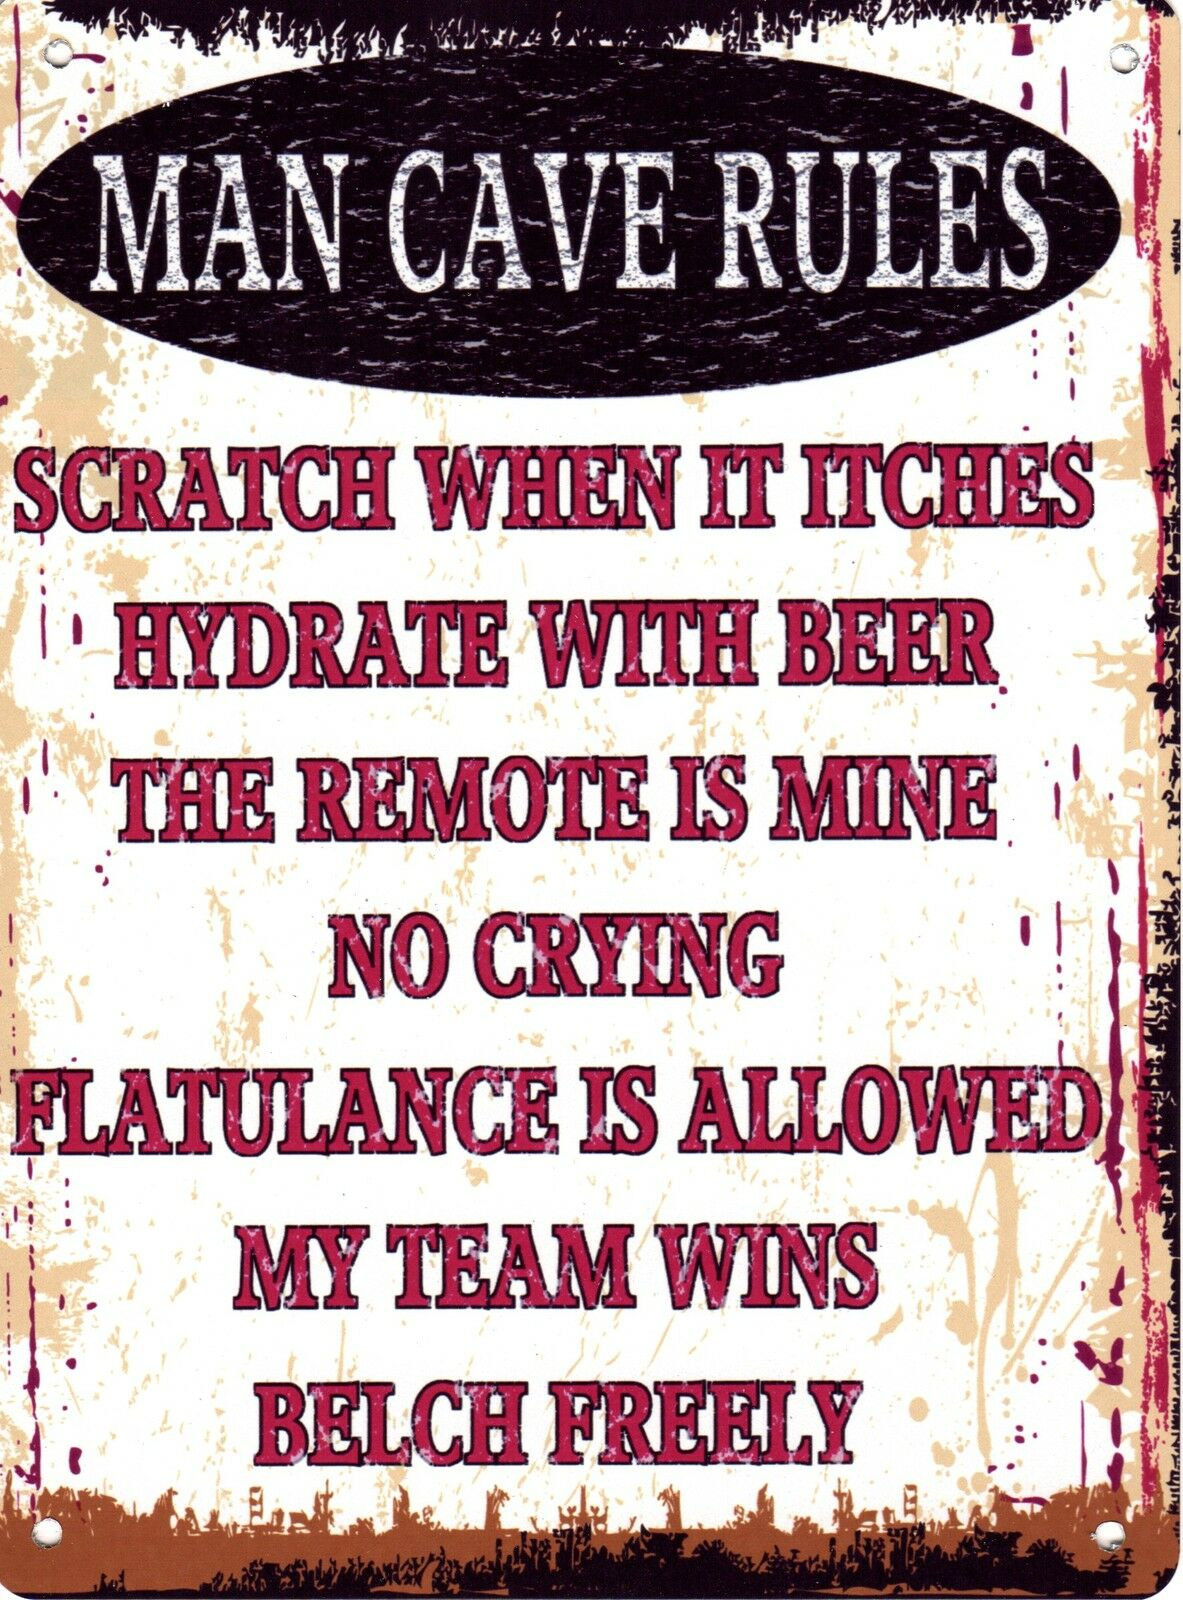 Man Cave Rules Sign Australia : Man cave rules metal sign retro vintage style small £